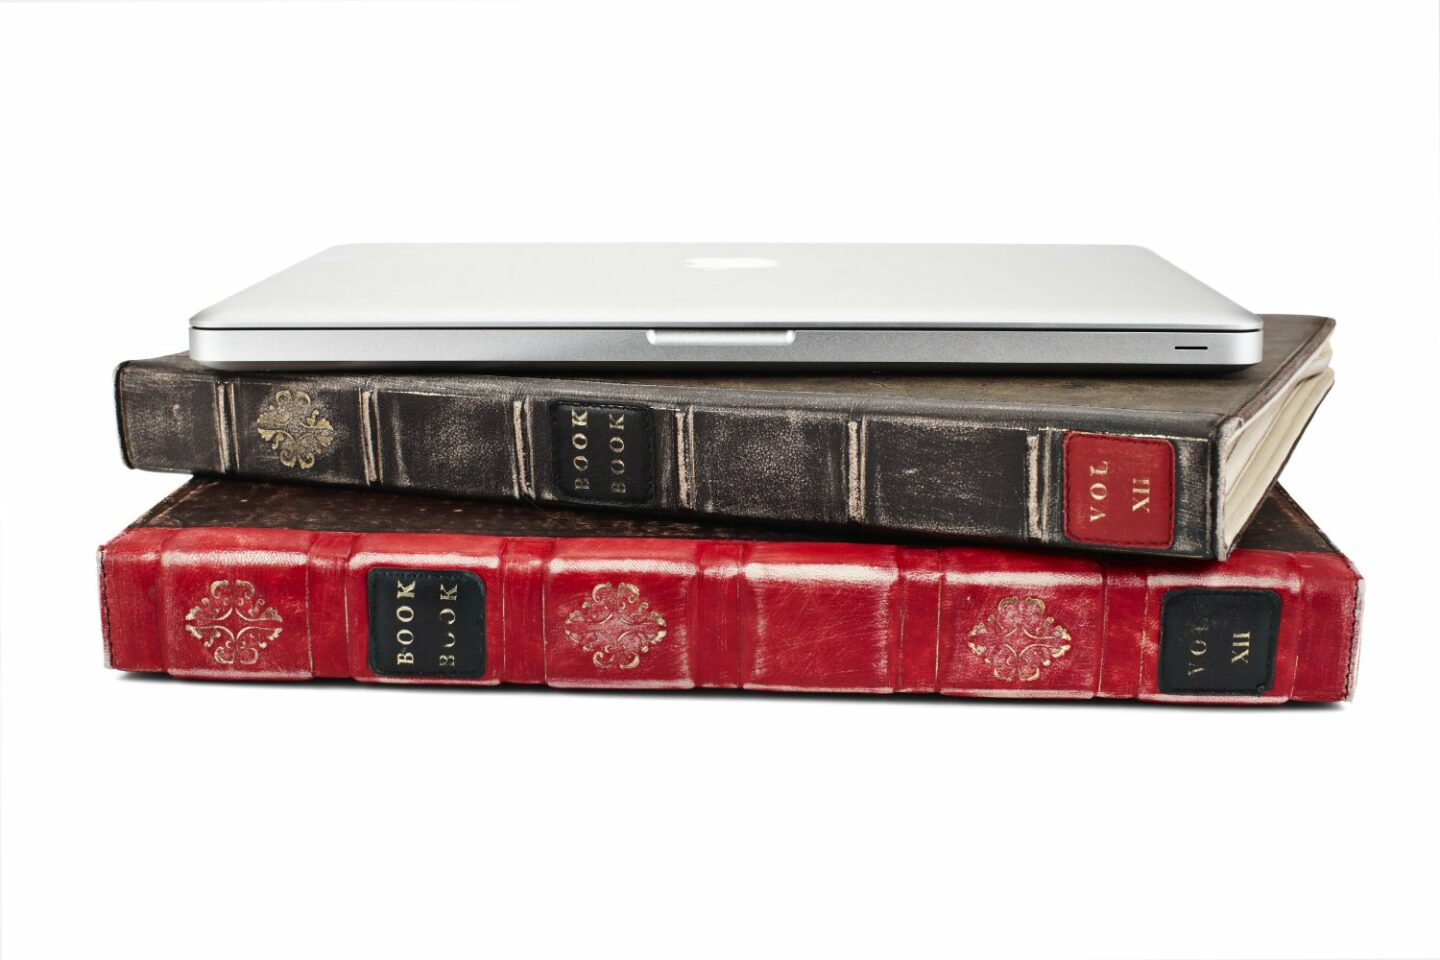 hide your laptop in plain sight with bookbook